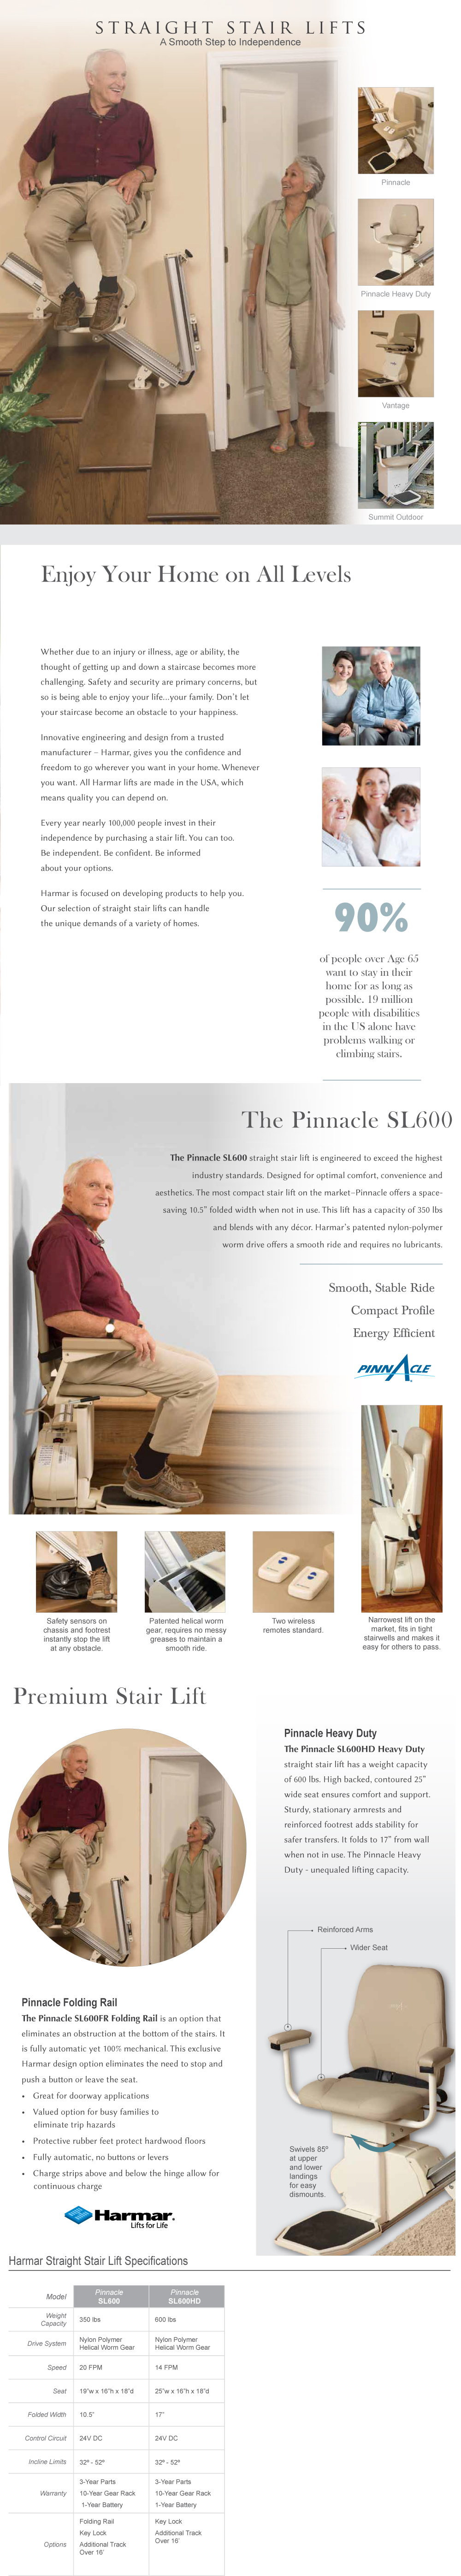 Harmar-pinnacle-premium-stair-lift